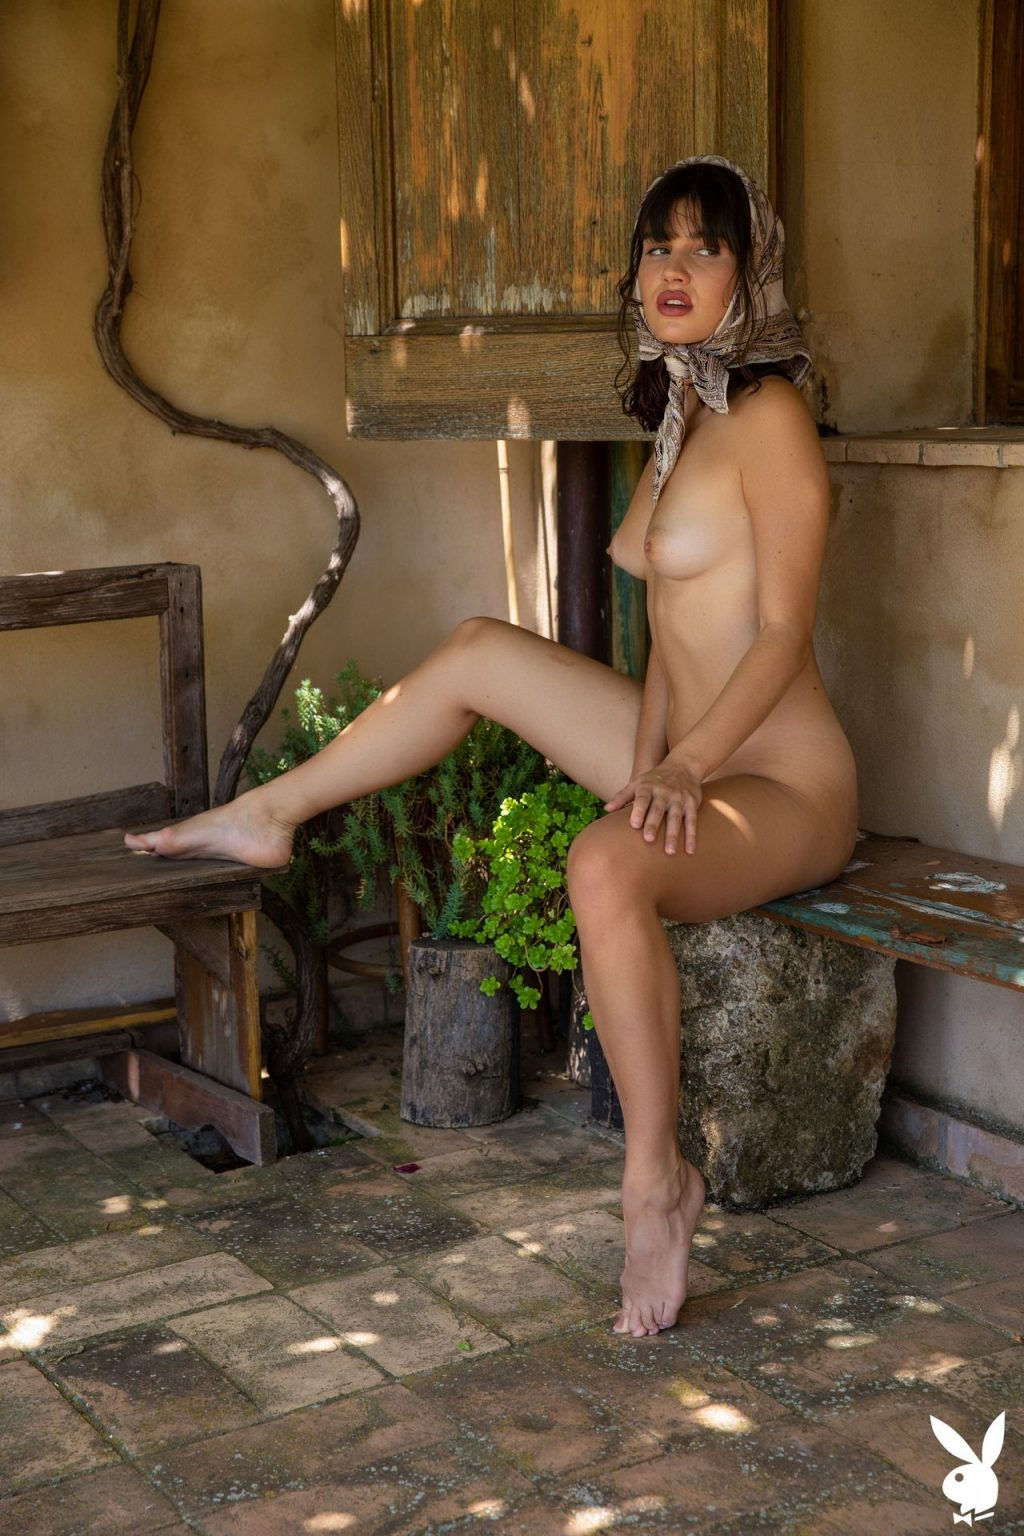 Laura Devushcat Nude – Countryside Escape (34 Photos + GIFs & Video)